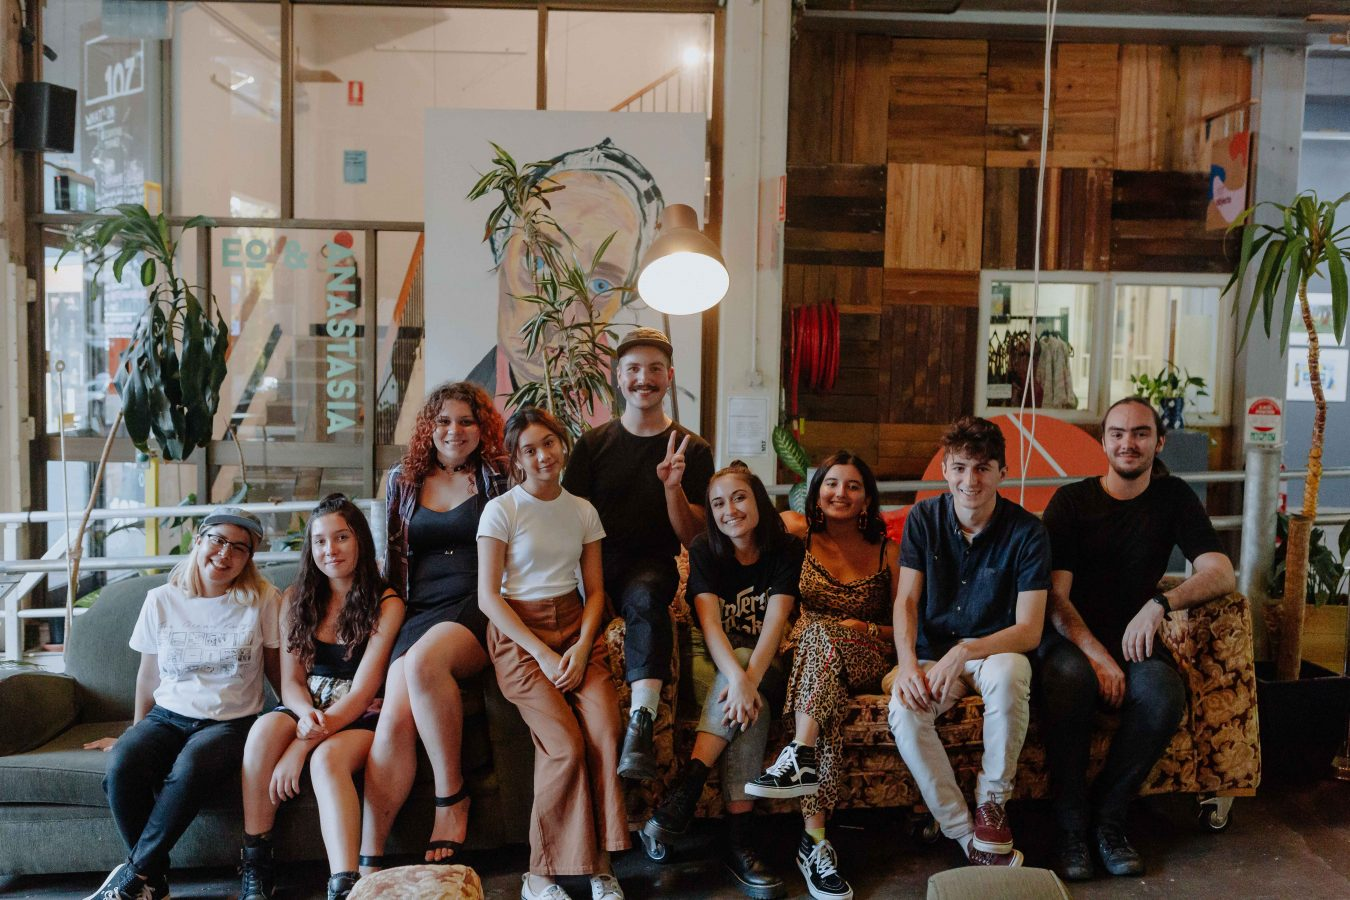 MusicNSW's Young People Committee